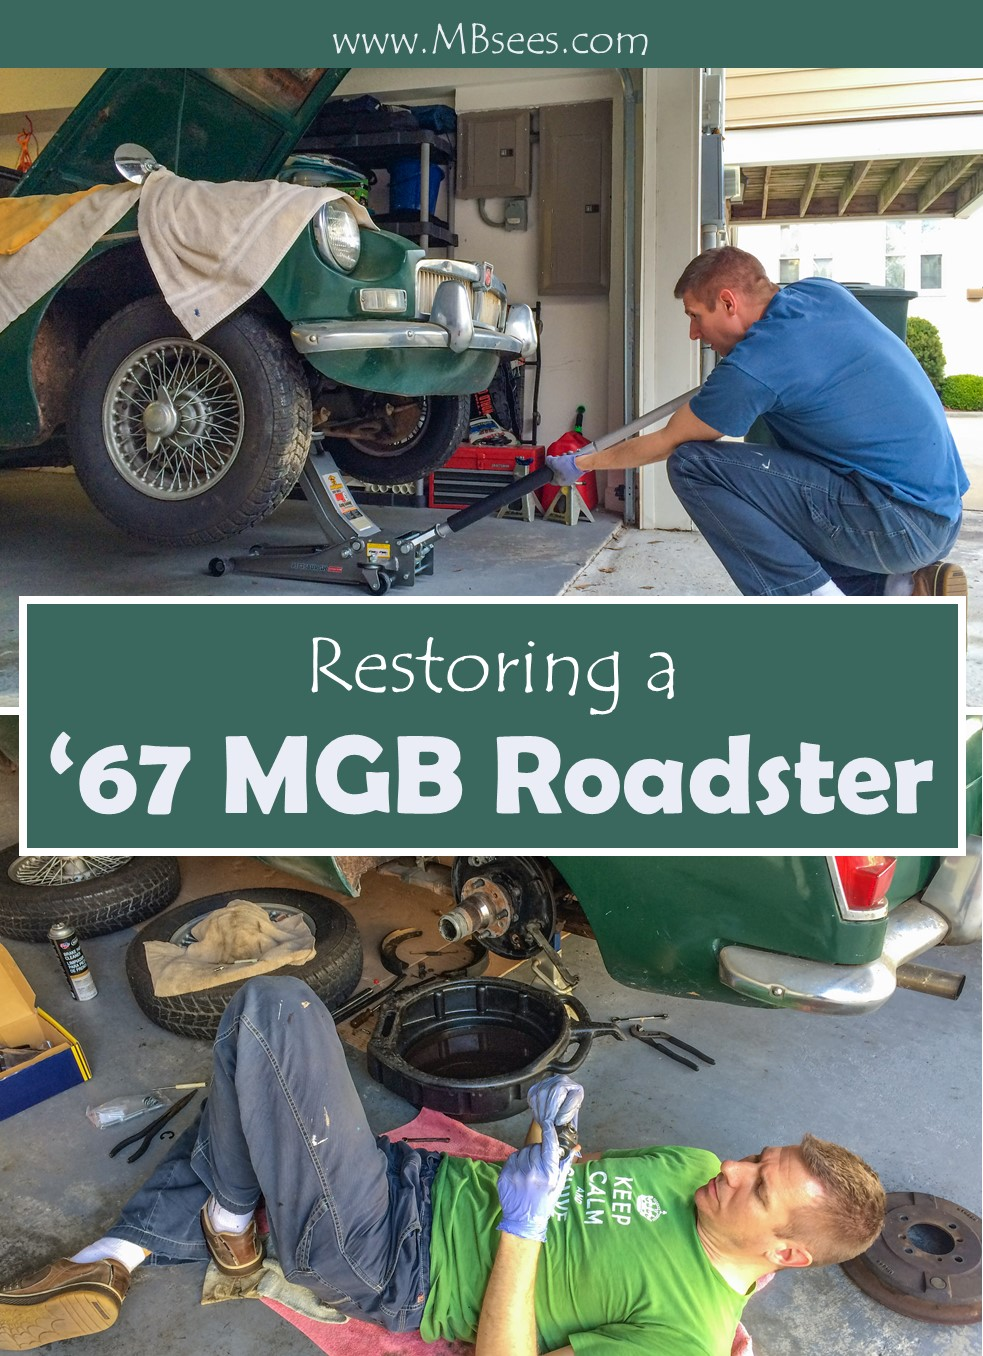 We did an MG restoration… on a 1967 MGB Roadster! Here's how we went about restoring an MG convertible, where we got MG parts, and who provided MG service for our classic car restoration project. Save this pin! #MGconvertible #MGrestoration #MGBRoadster #classiccarrestoration